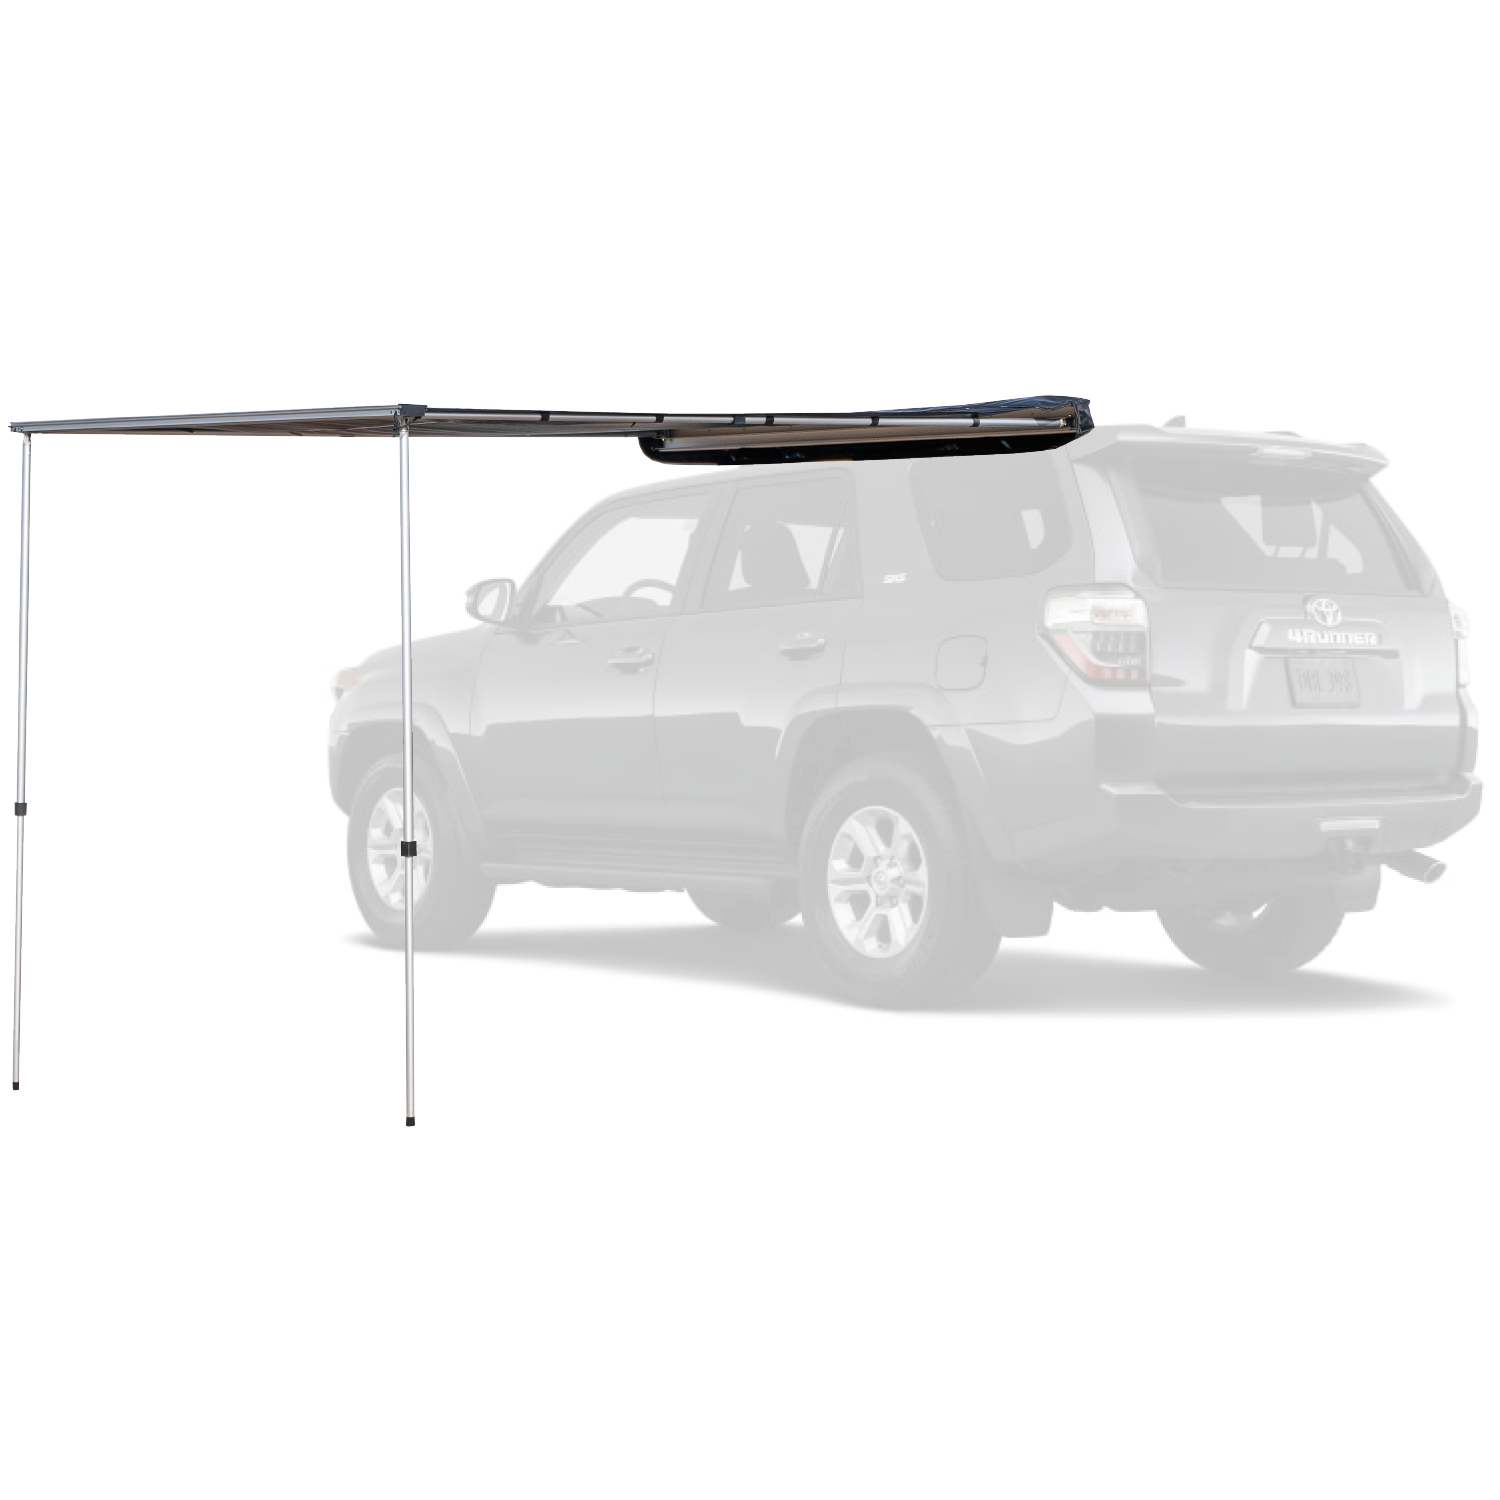 Rooftop awning shown on a Toyota 4Runner